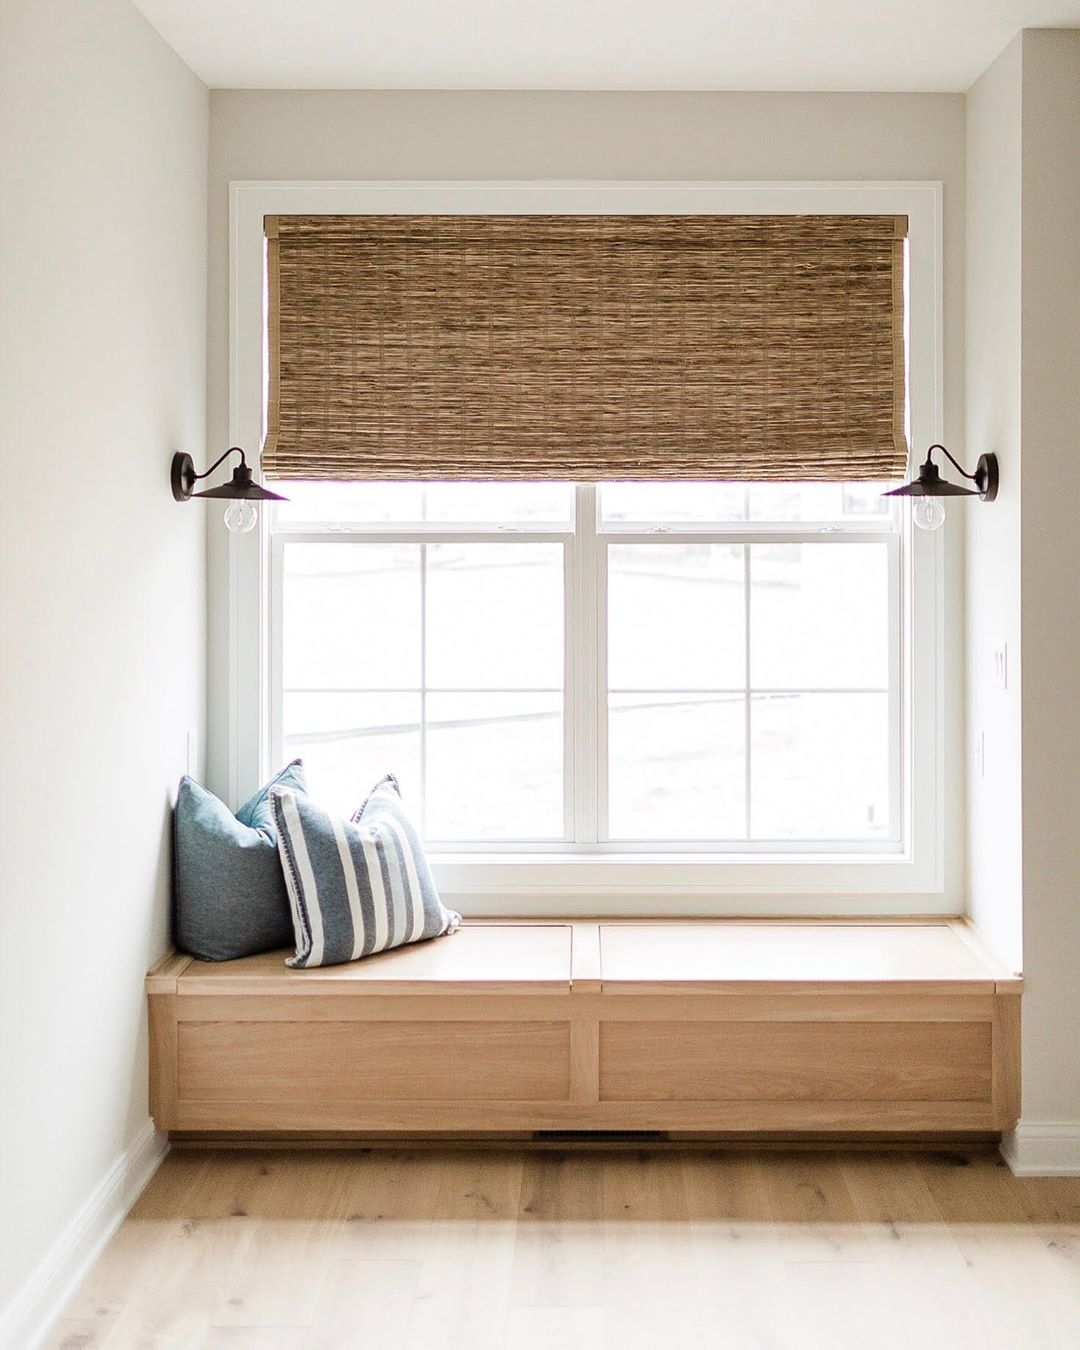 window seat with wood bench, white window, and shade